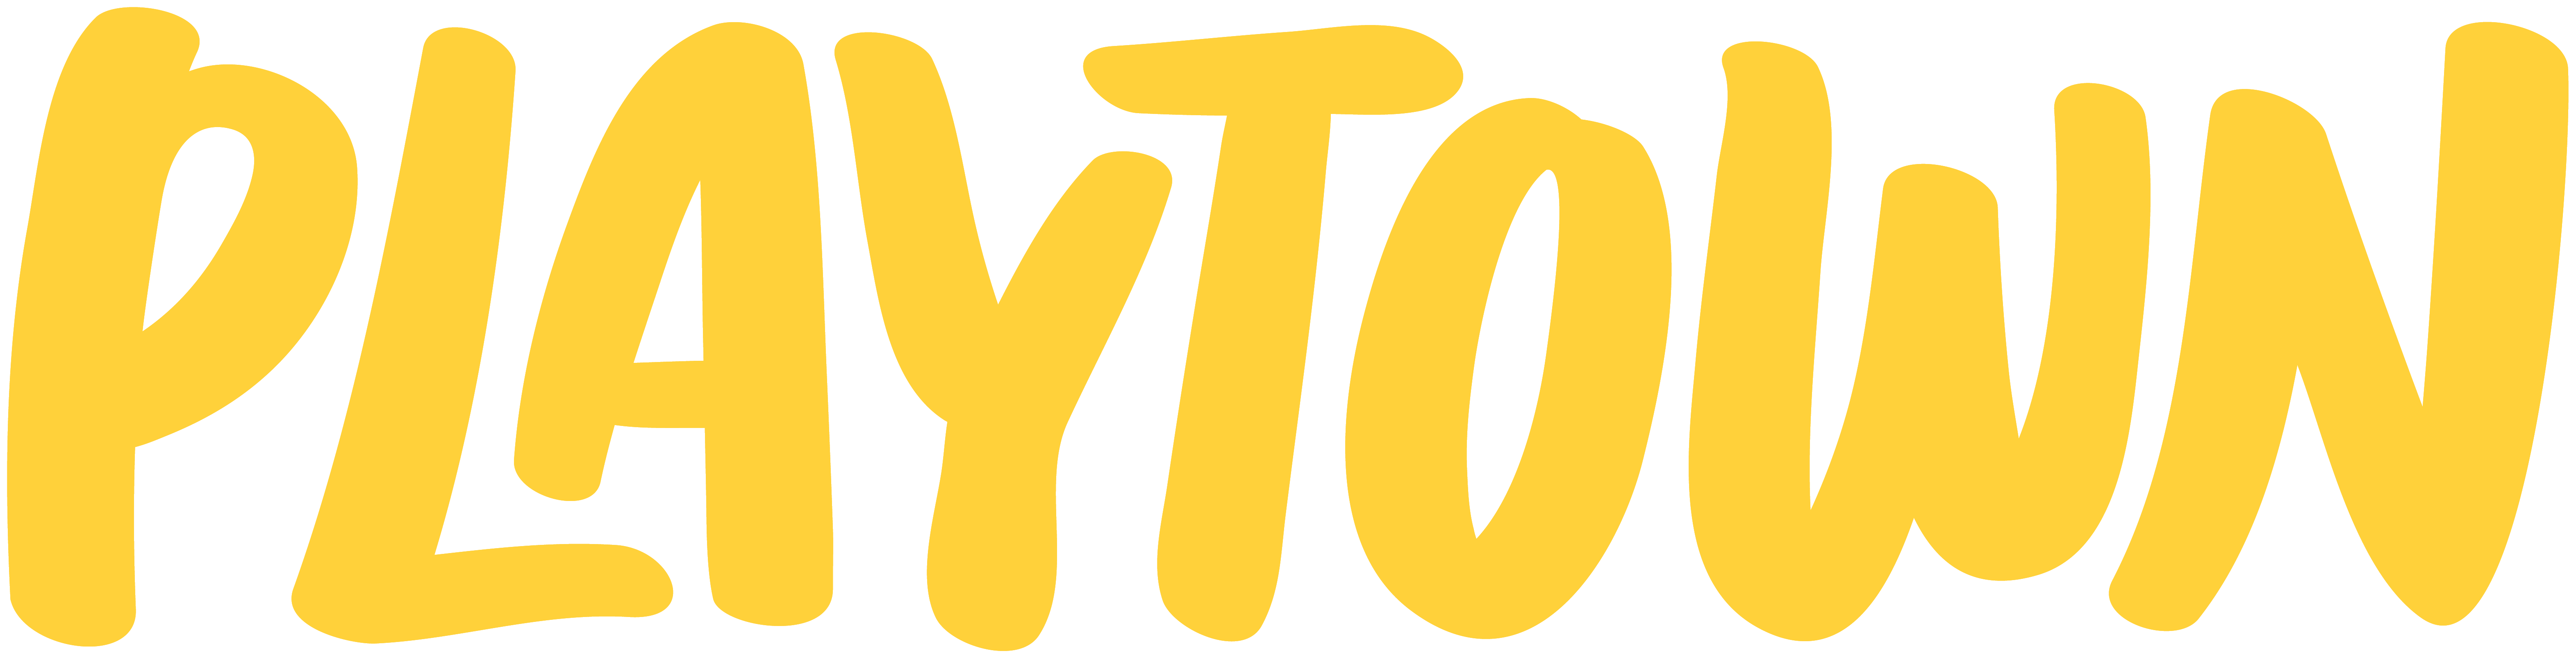 Playtown Wordmark